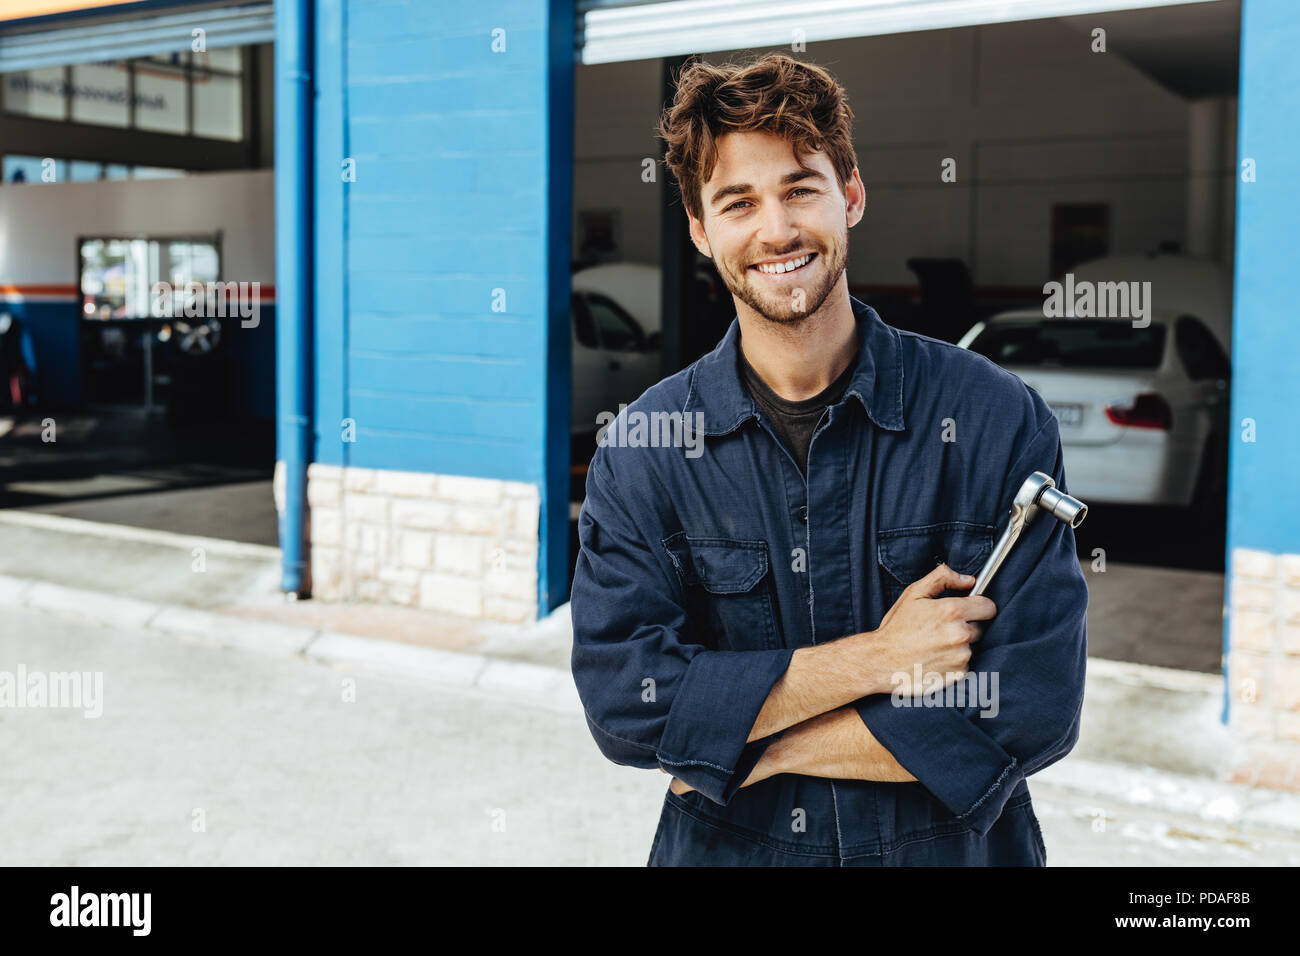 Professional auto mechanic in uniform with wrench. Young mechanic standing with his arms crossed outside his garage. - Stock Image